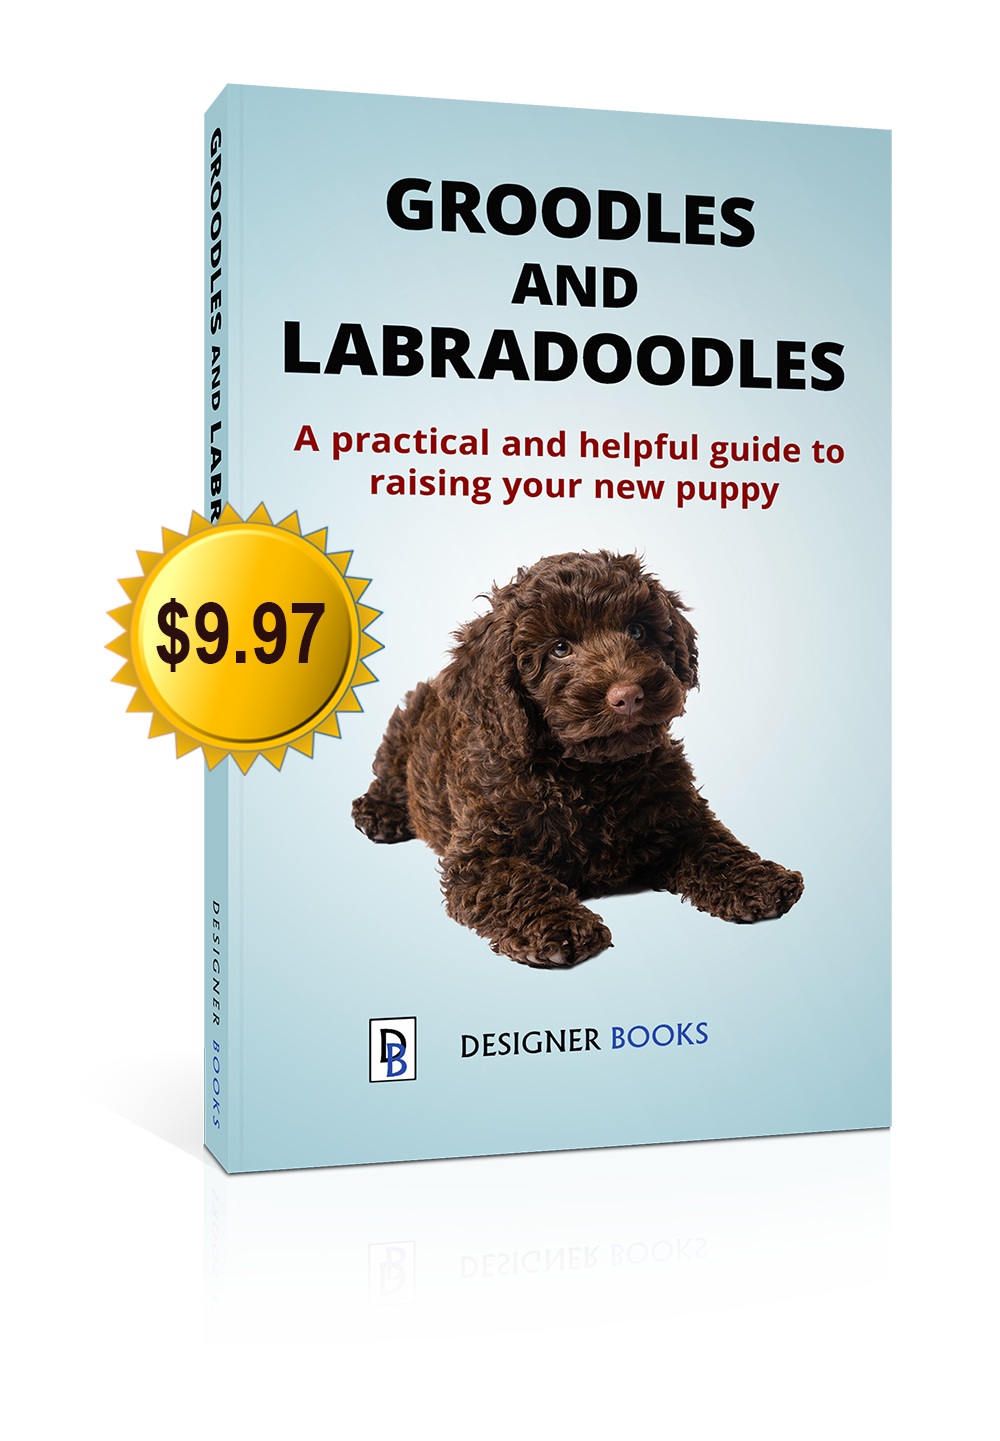 Groodles and Labradoodles book